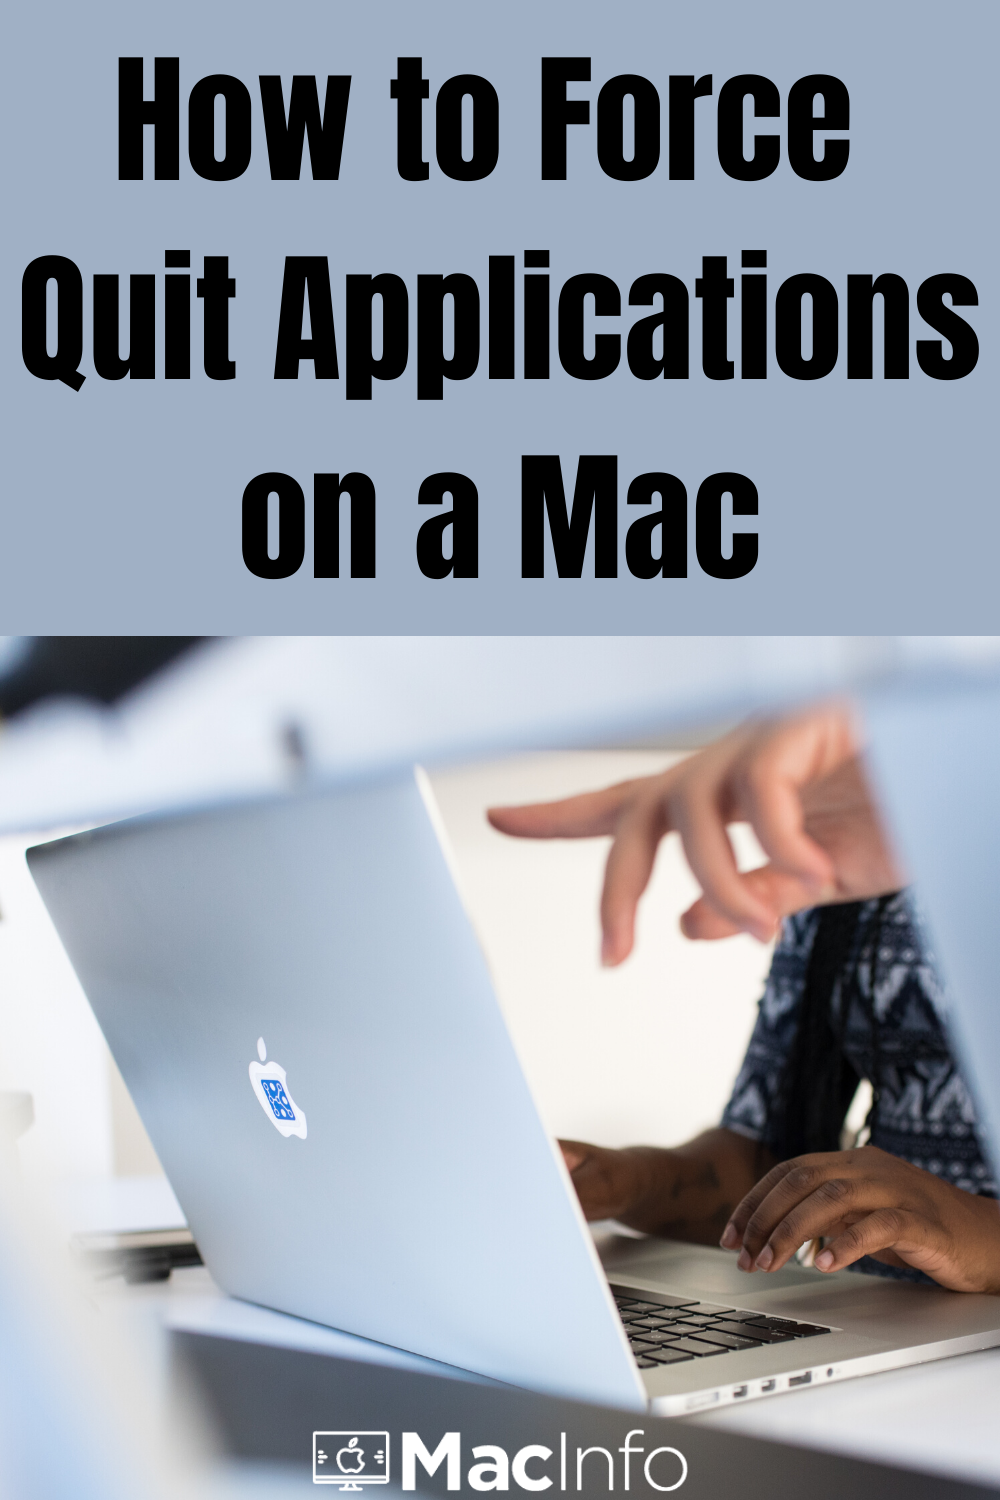 How Do You Get To Applications On A Mac